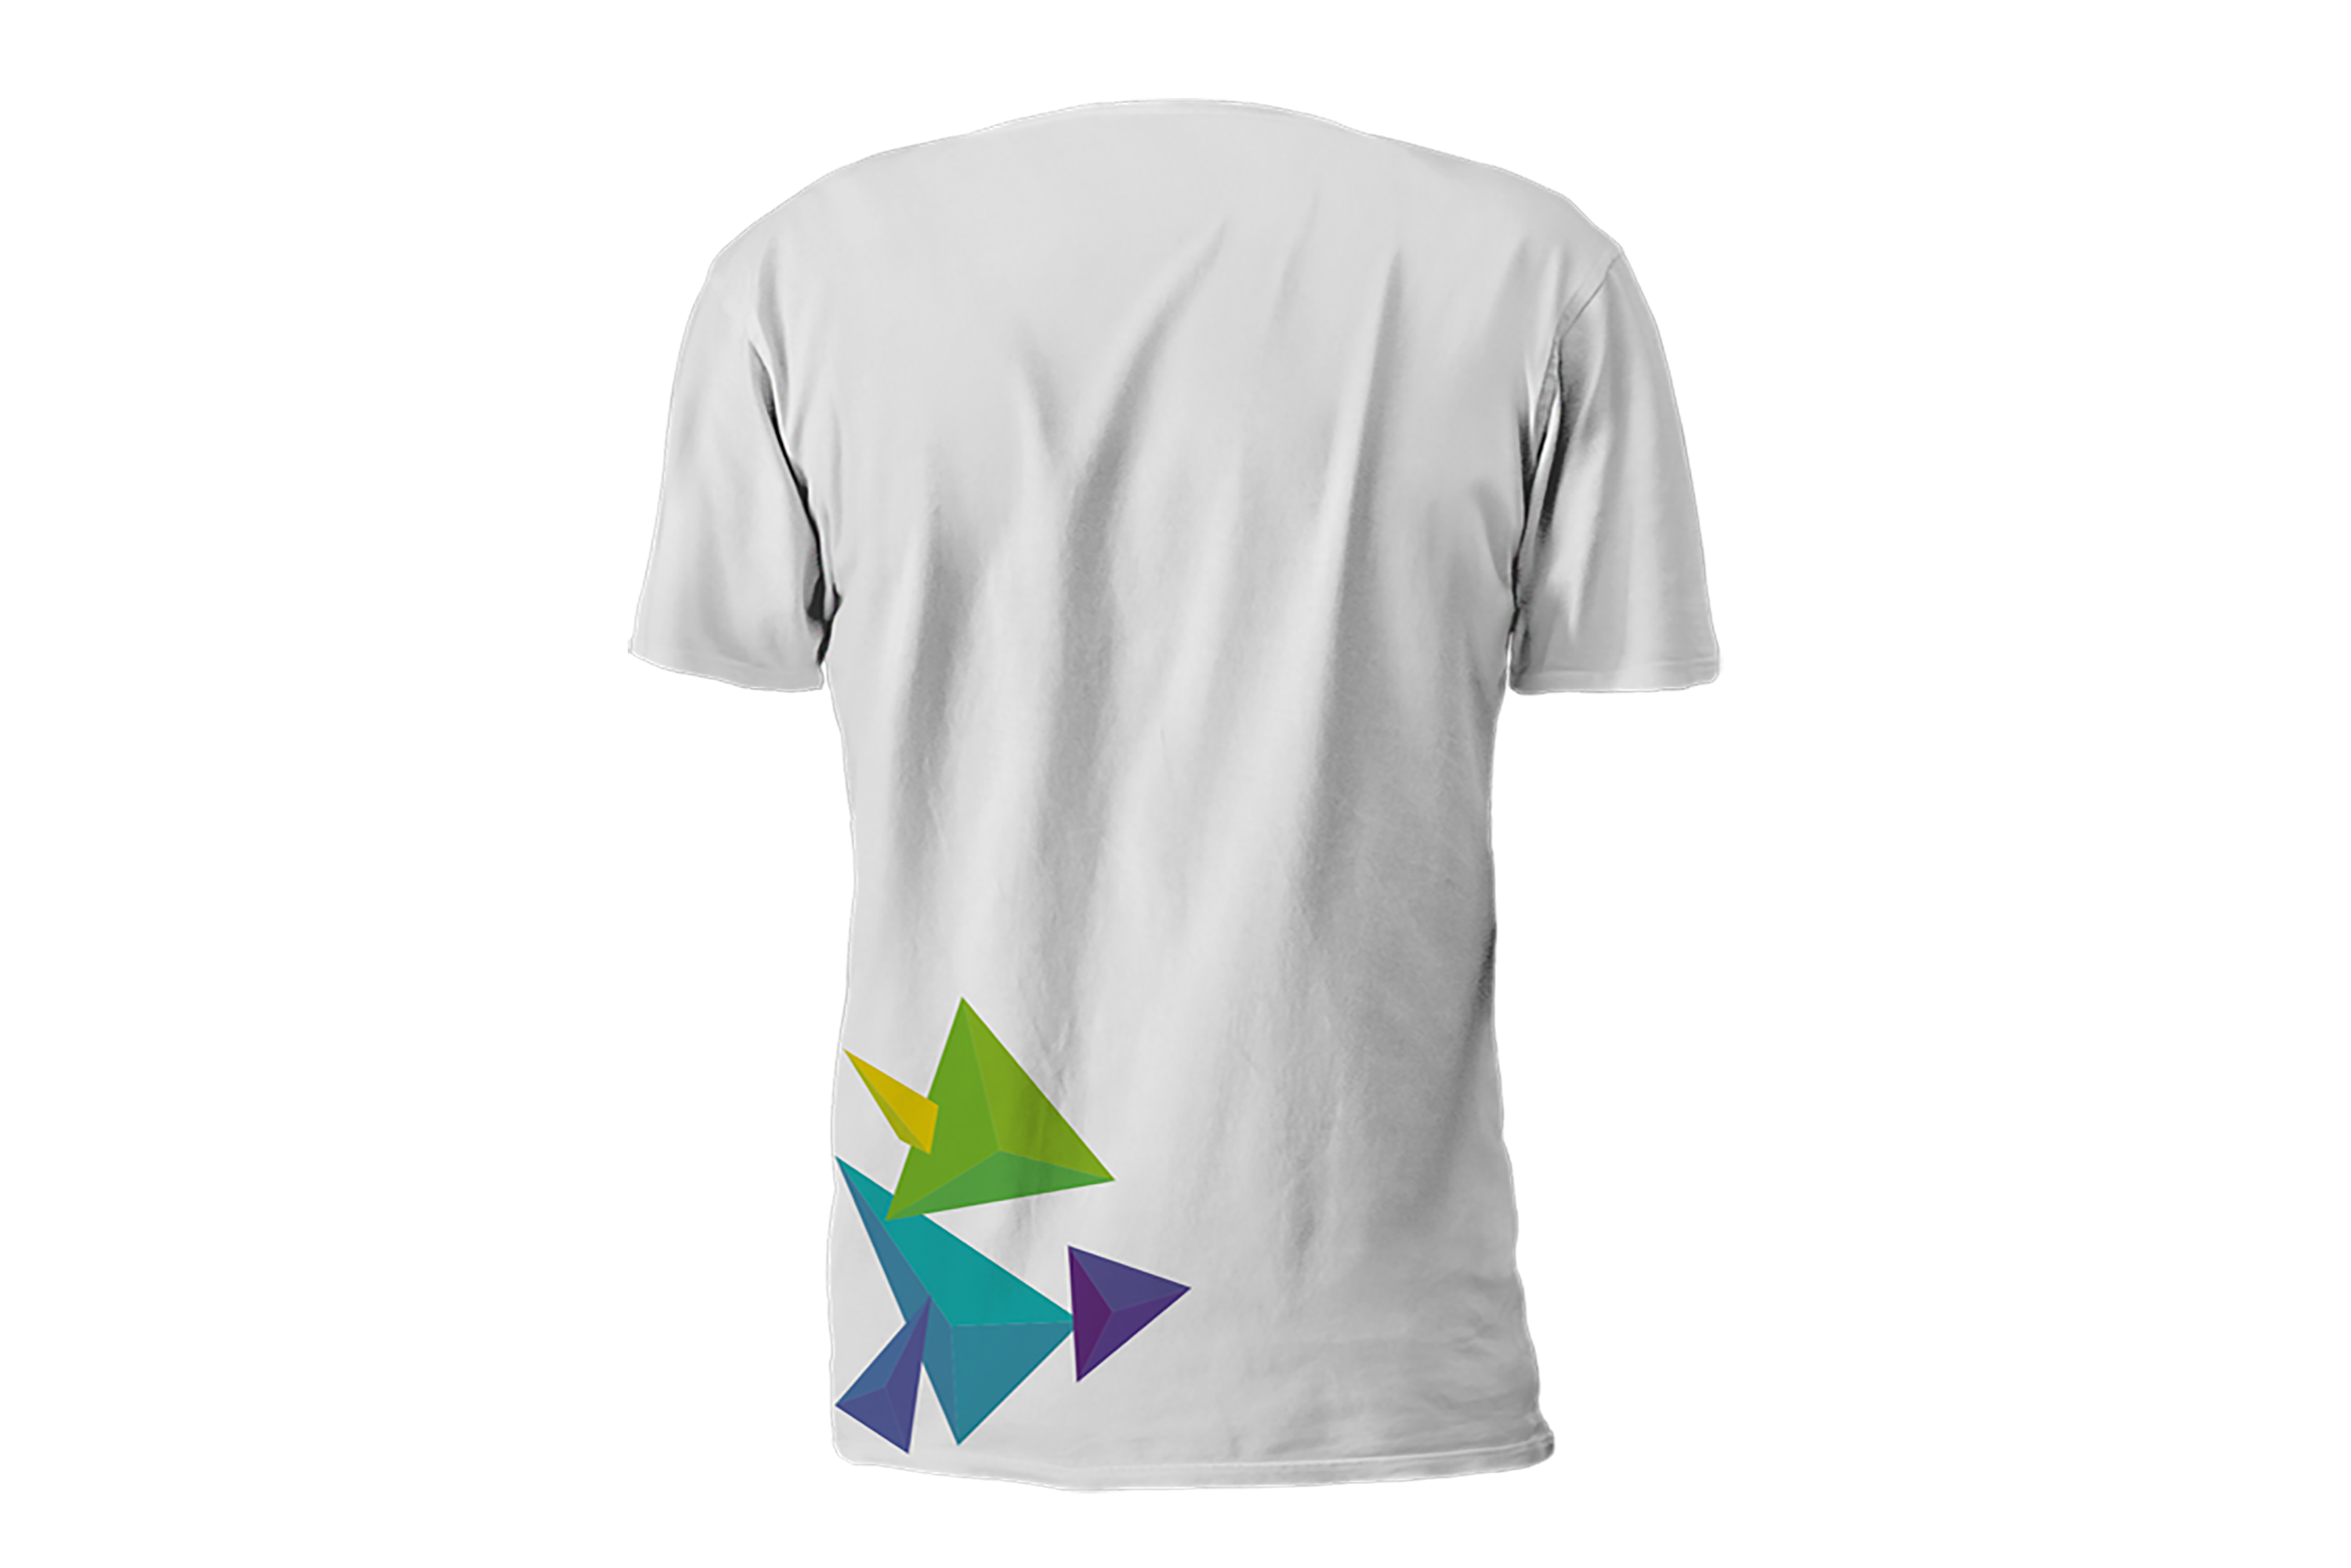 white tshirt back view with colourful graphics of 3d like triangles